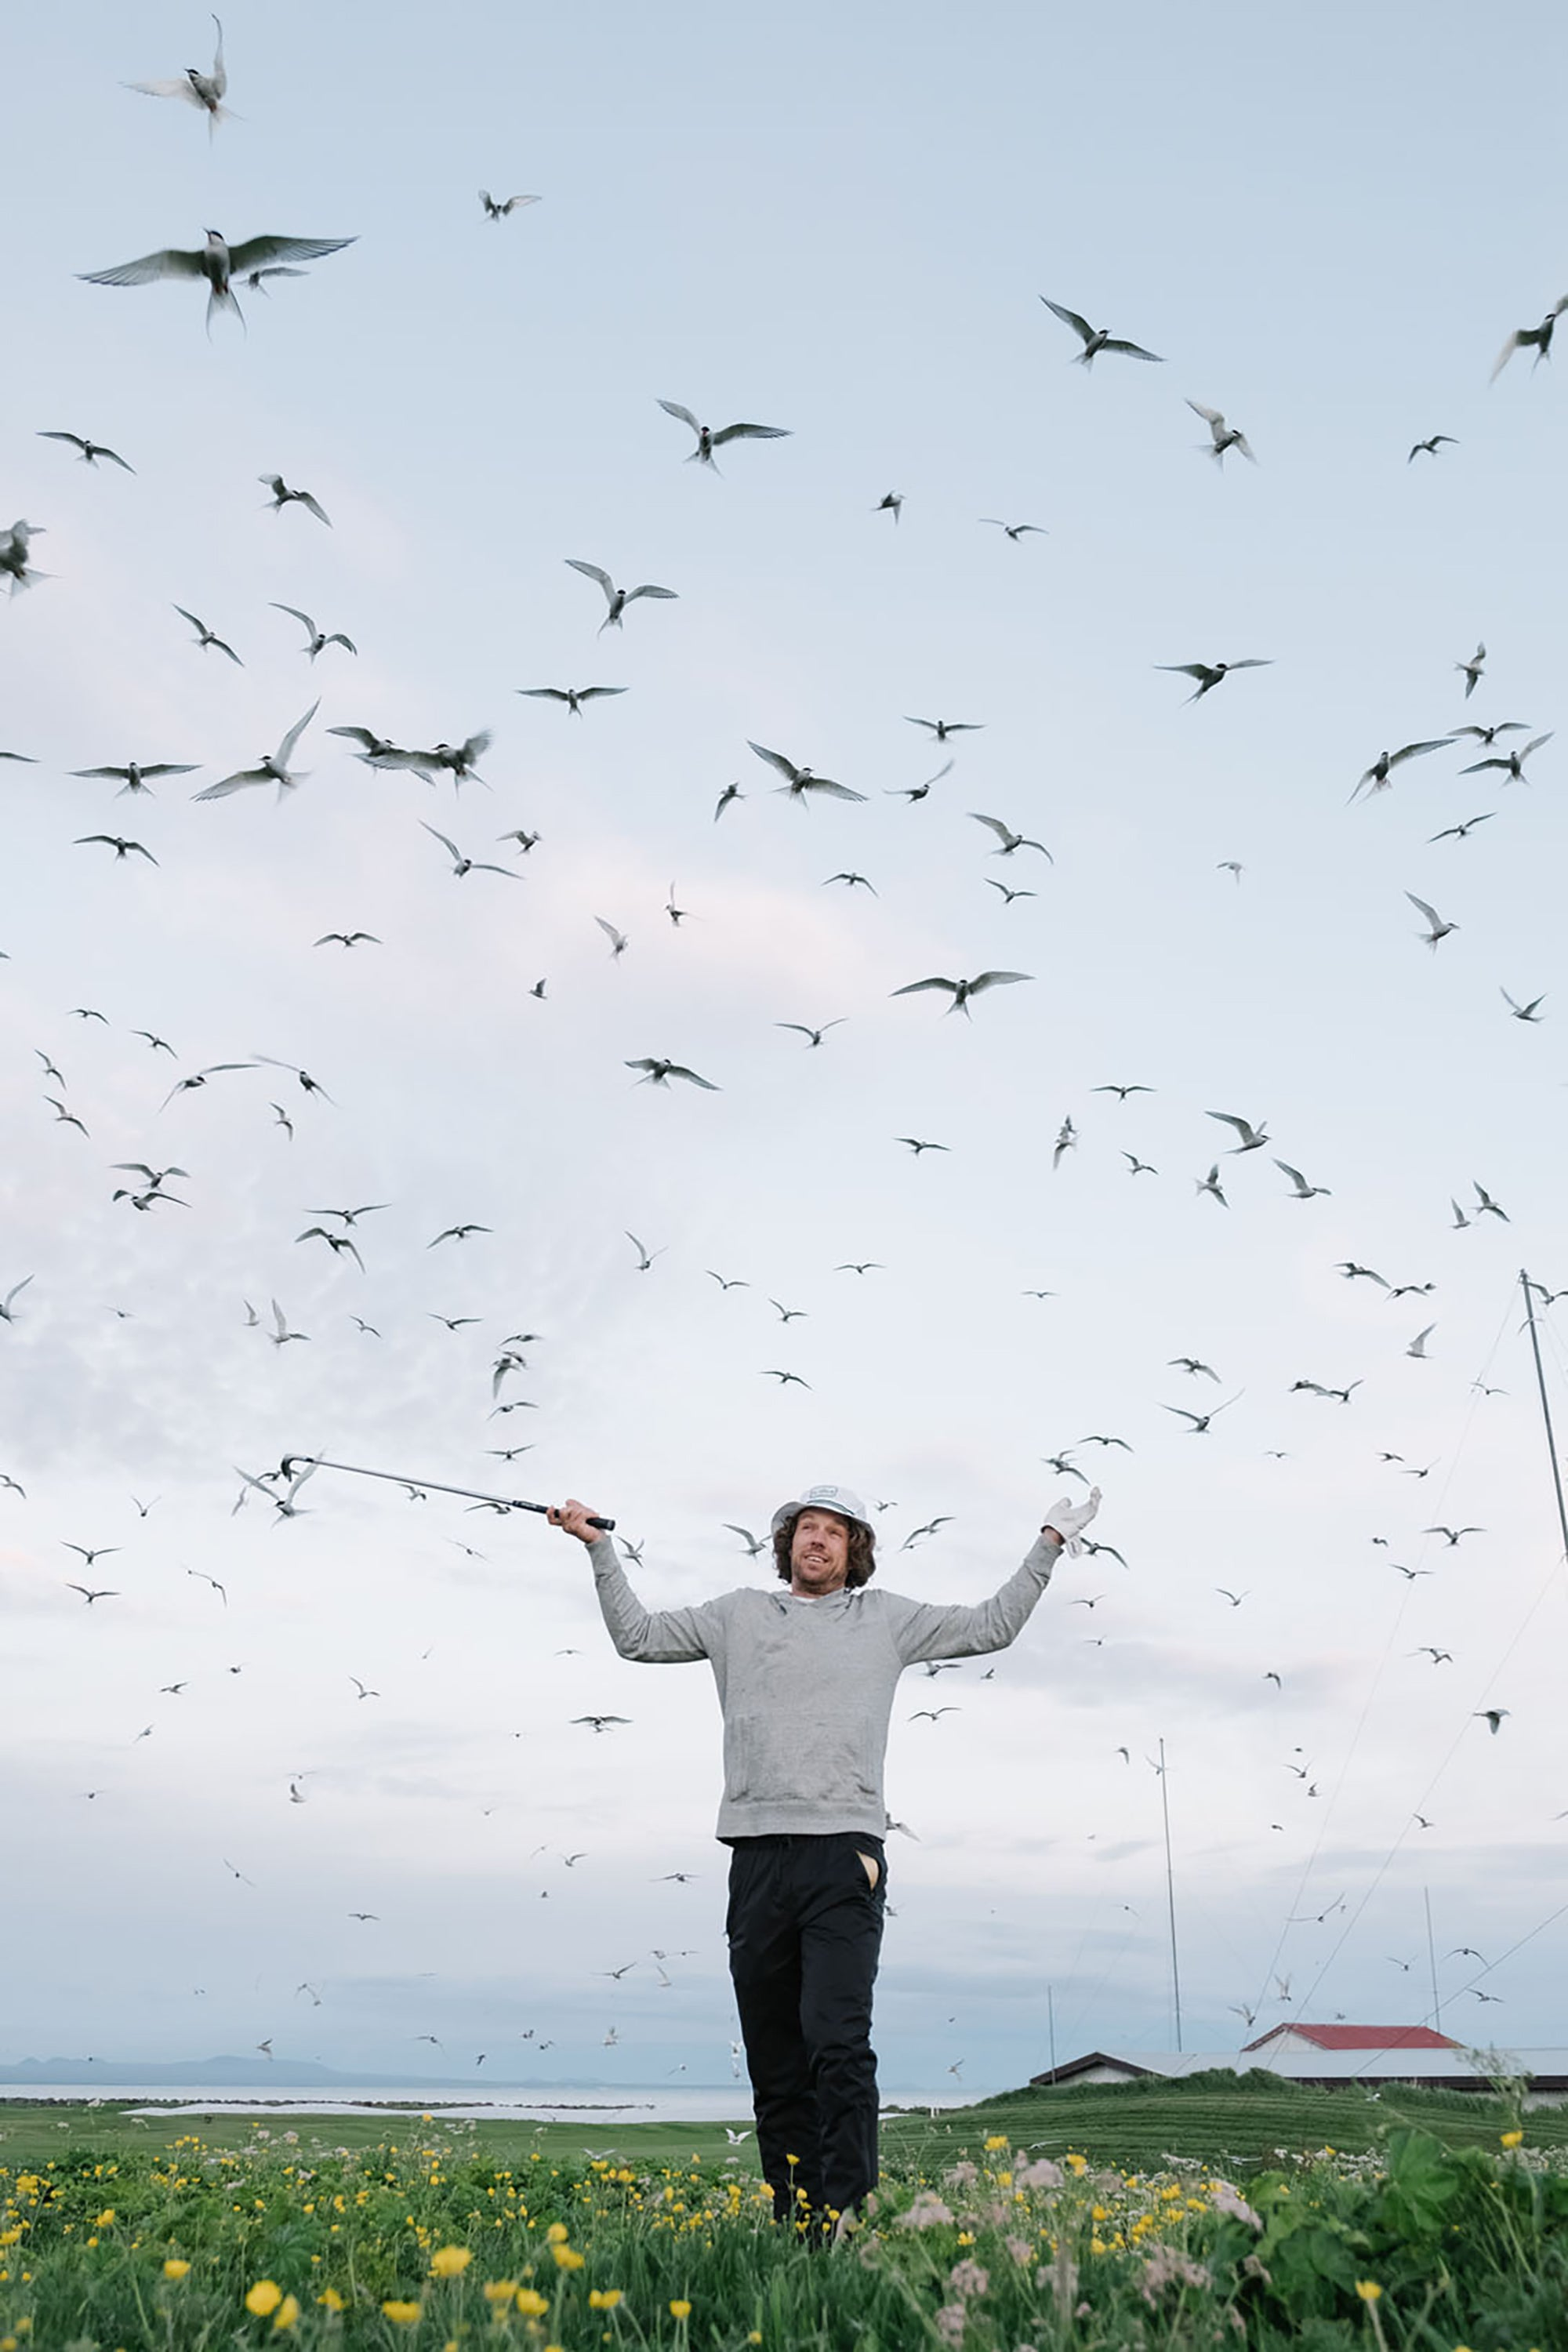 Erik Anders Lang holding up club surrounded by birds flying